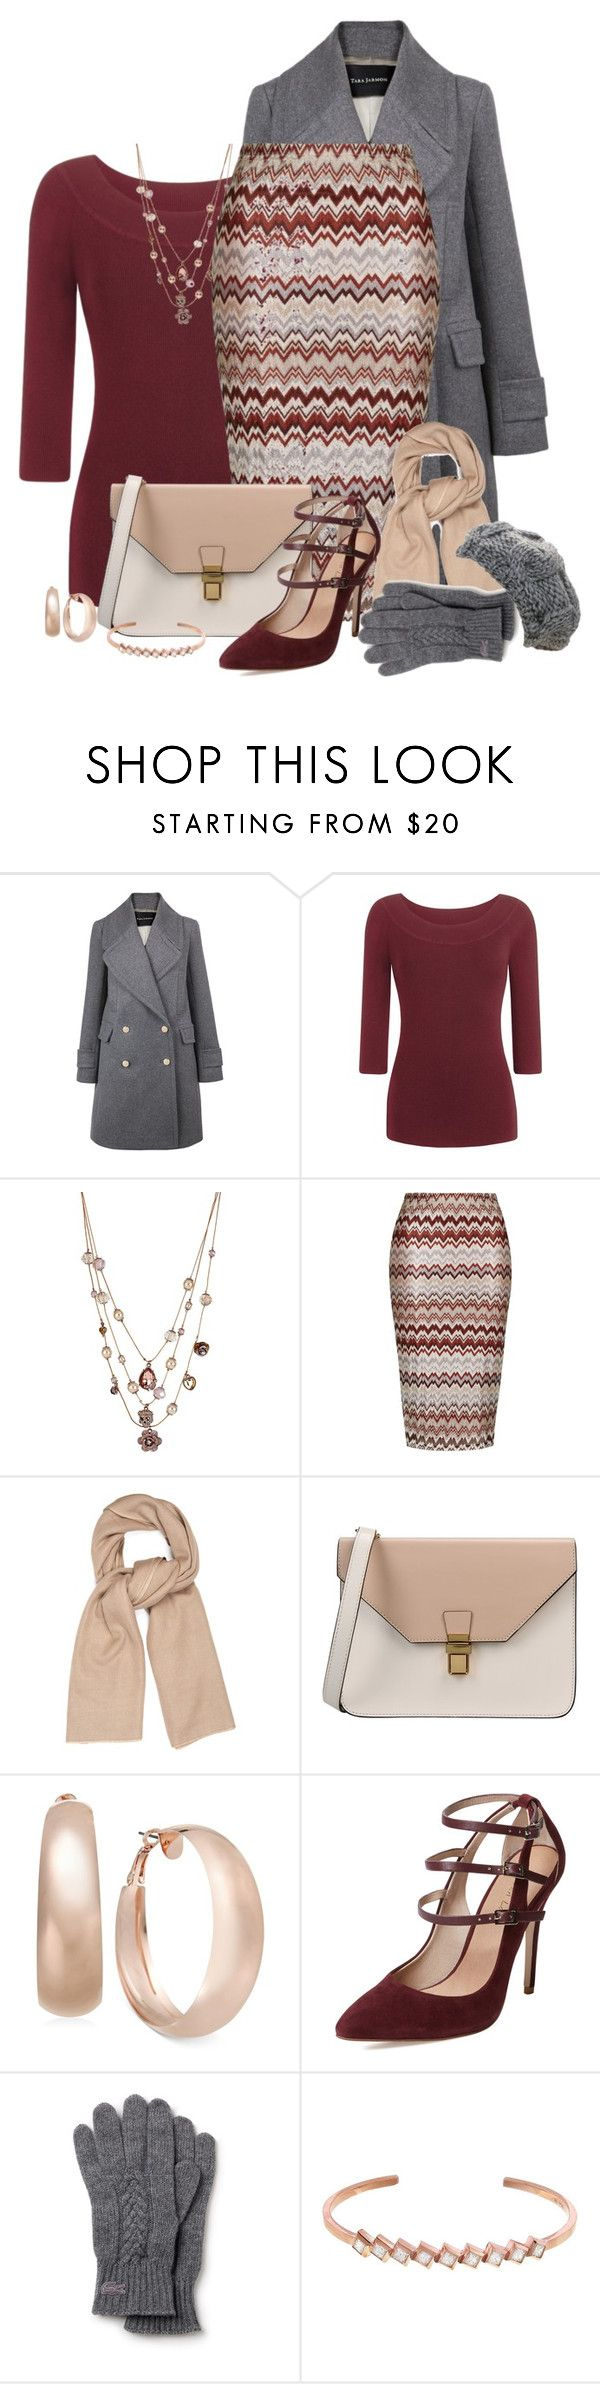 """""""Zig-Zag Pencil Skirt"""" by cathy0402 ❤ liked on Polyvore featuring Tara Jarmon, Betsey Johnson, Topshop, Denis Colomb, 8, INC International Concepts, Maiden Lane, Lacoste, San Diego Hat Co. and women's clothing"""